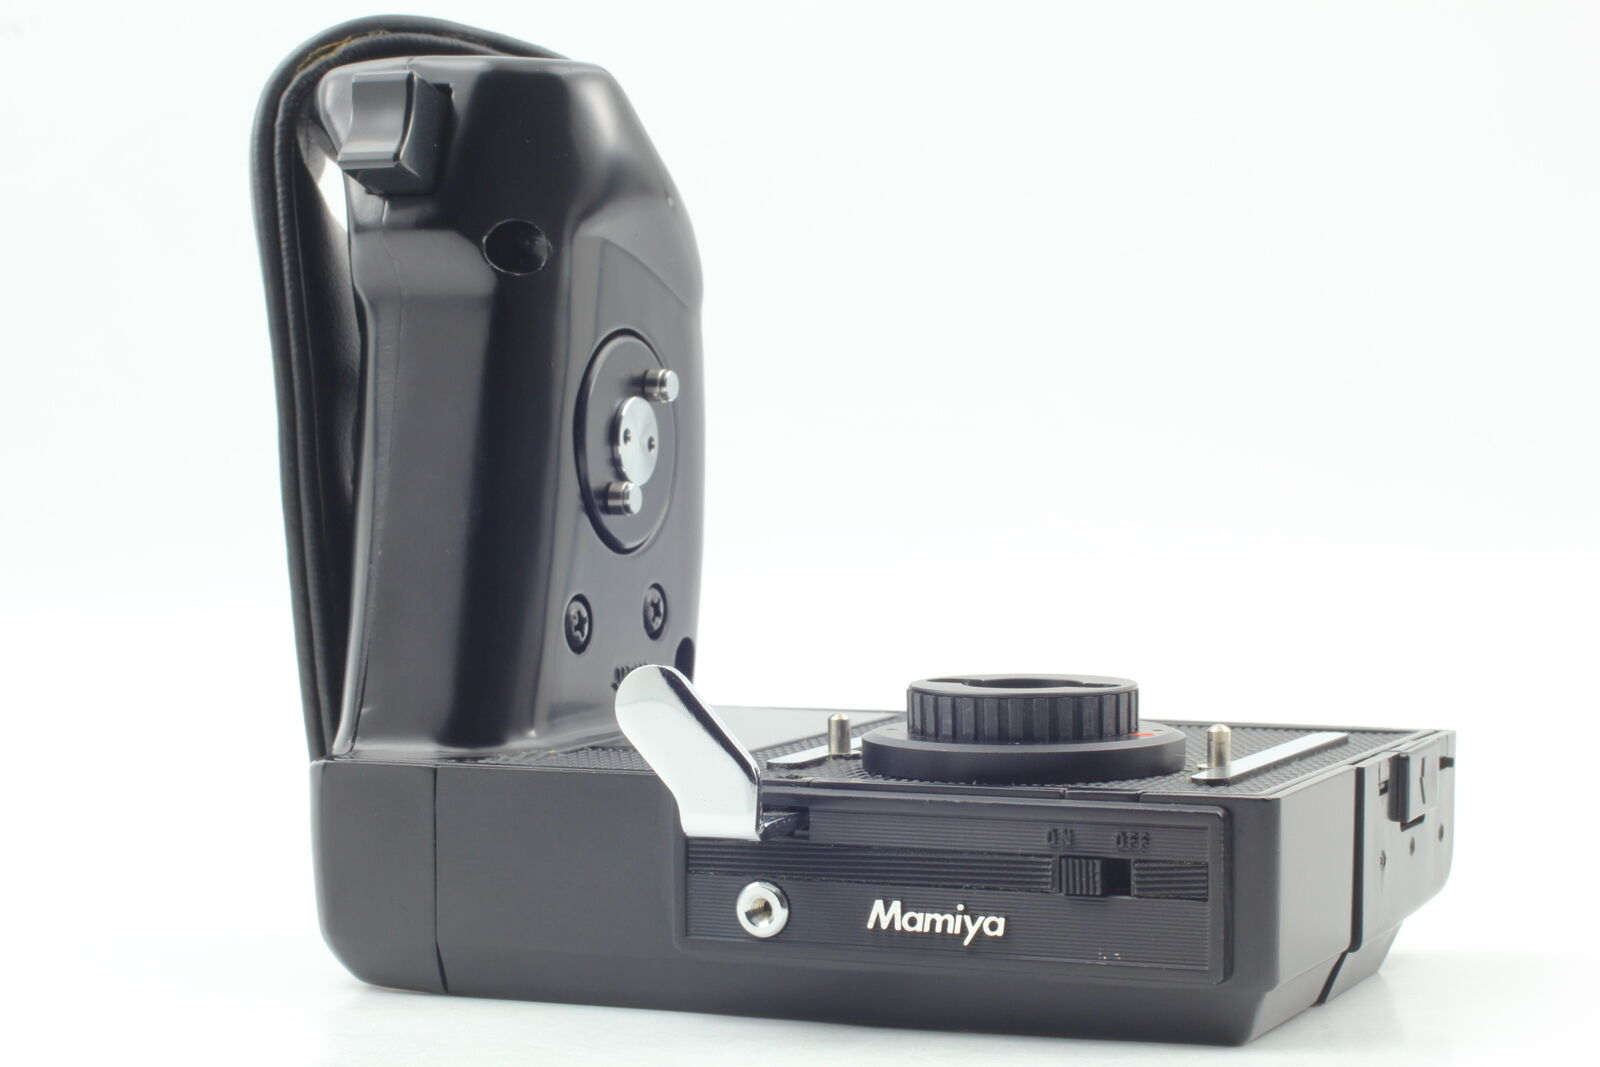 [Top MINT] Mamiya Motor Drive Power Winder Hand Grip for M645 1000S From JAPAN